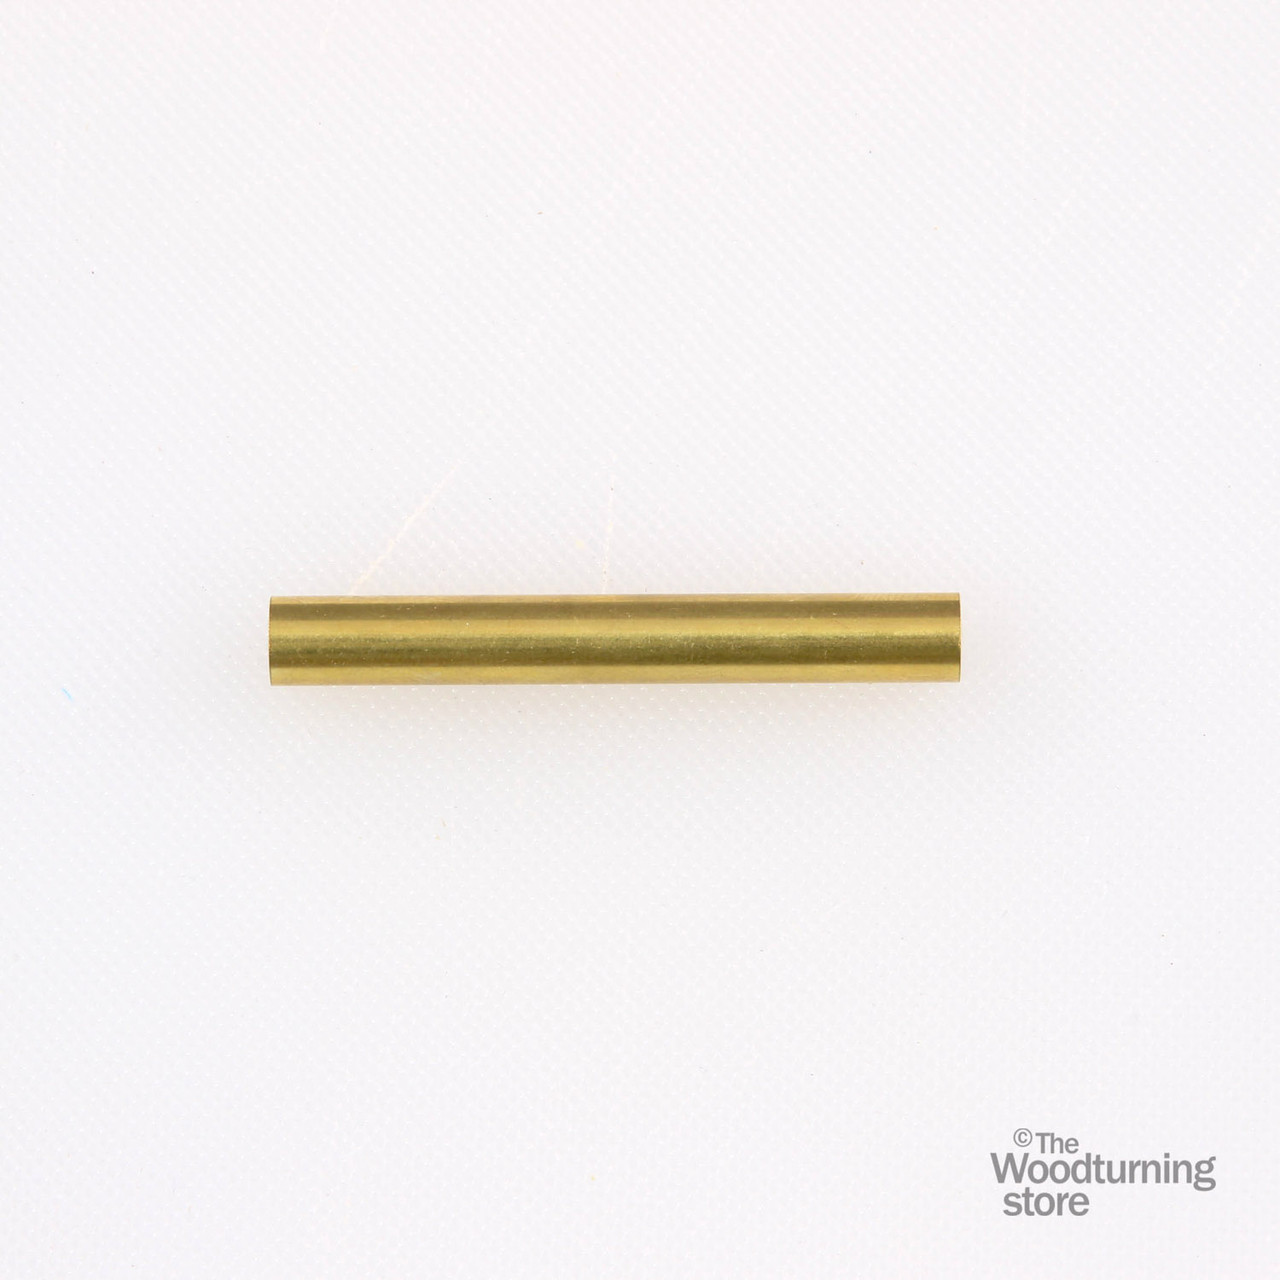 Replacement Tube for Slimline, Fancy, Comfort Kits, Upper or Lower